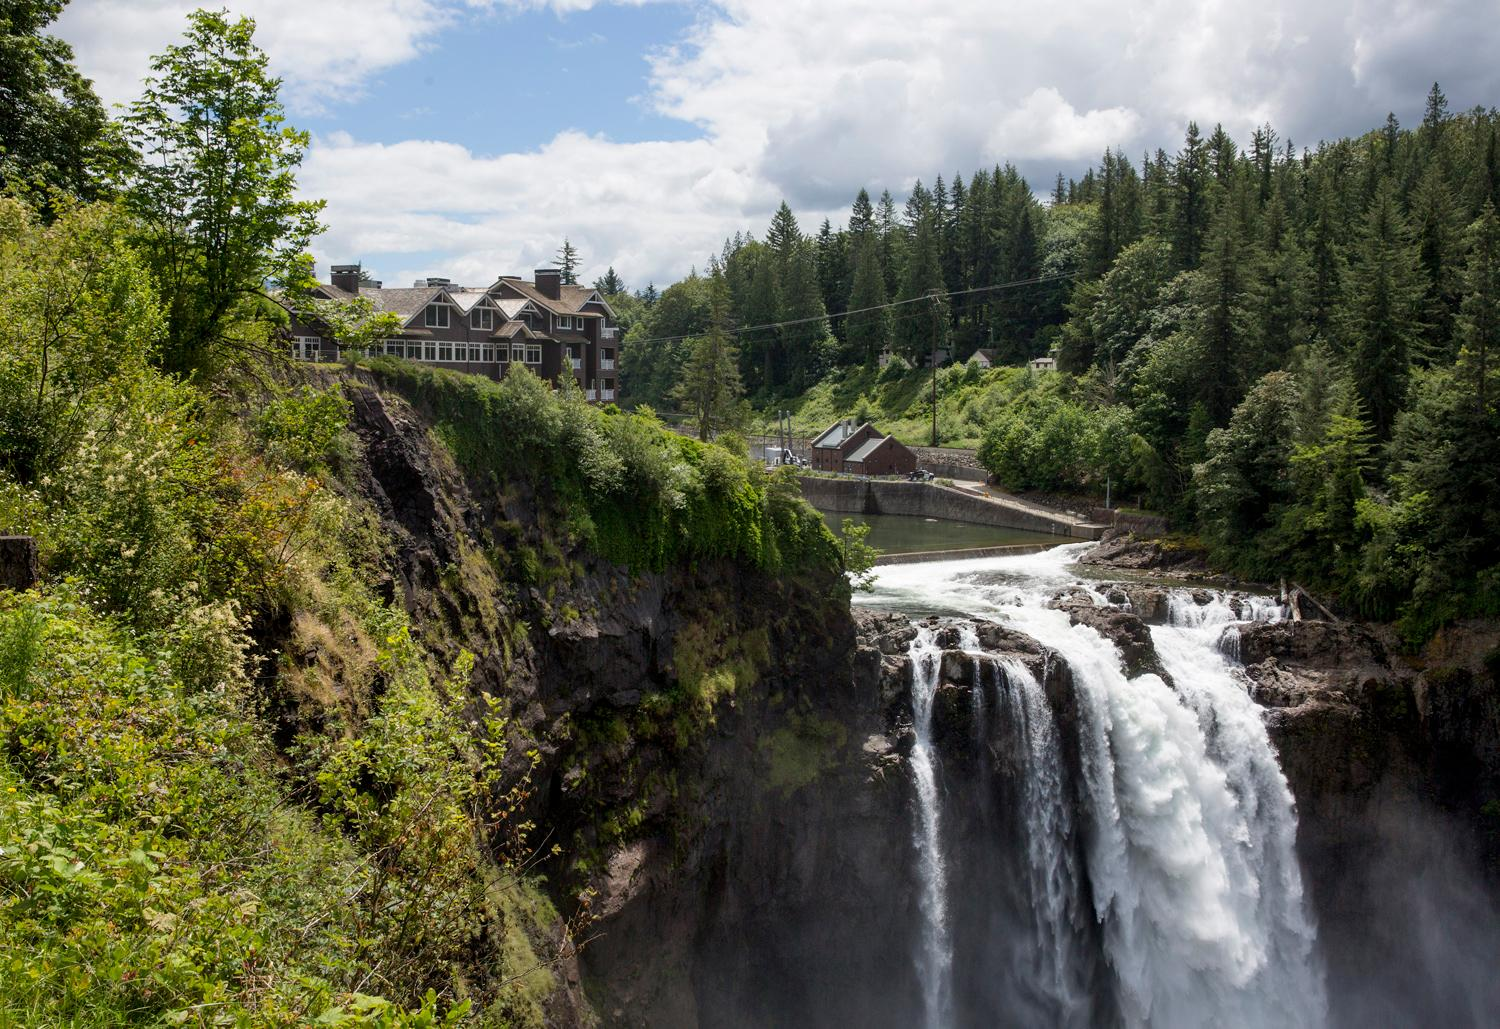 The iconic Salish Lodge and Spa went through $12 million in renovations and remodeled its 86 guest rooms. New features include gas fireplaces, and deluxe bathrooms with a soaking tub or oversized showers, with suites offering both. (Sy Bean / Seattle Refined)